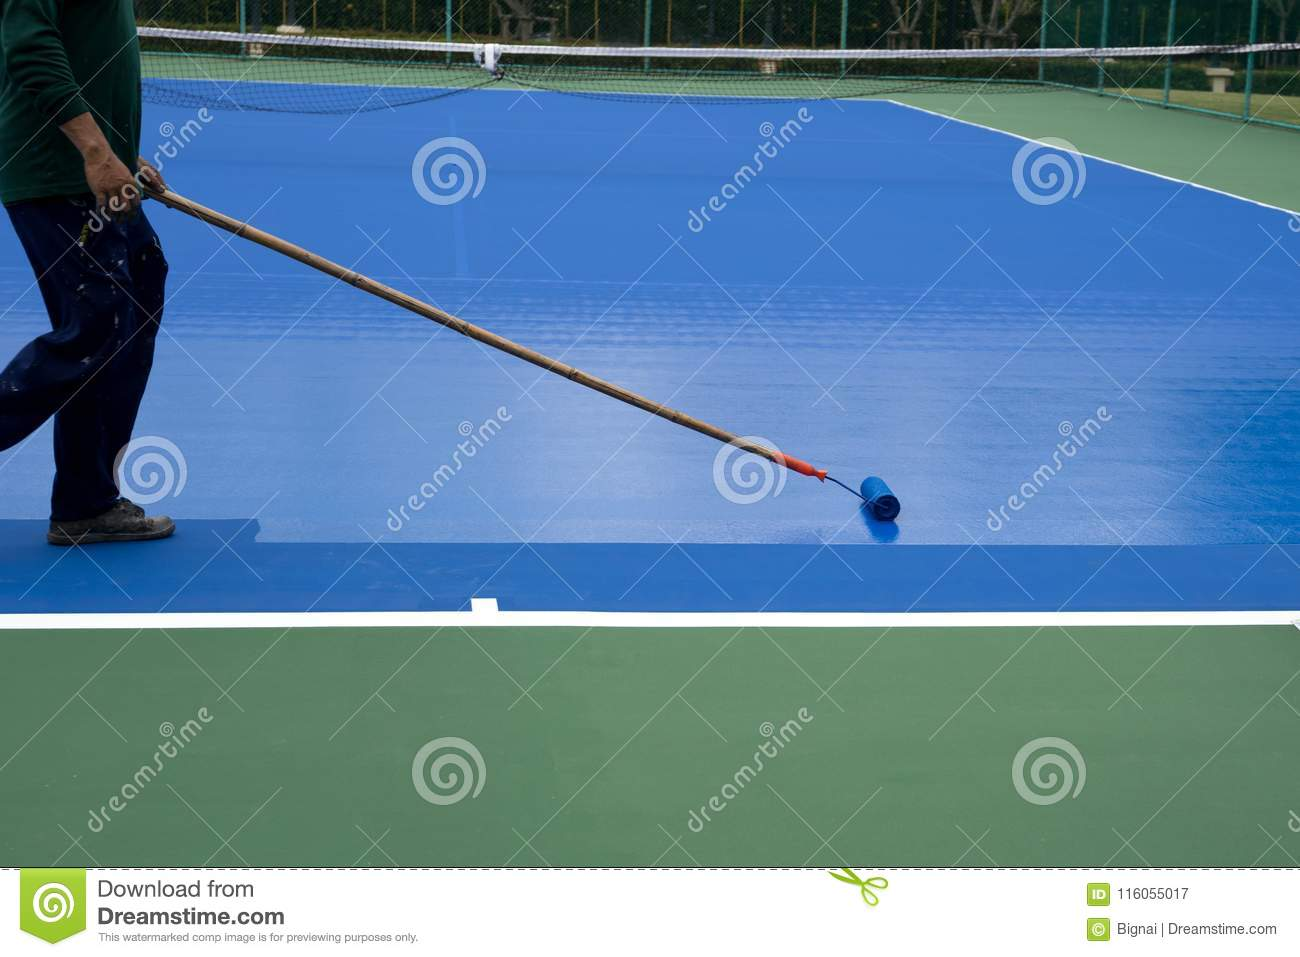 Man Painter Use Paint Roller Painting Tennis Court Stock Image